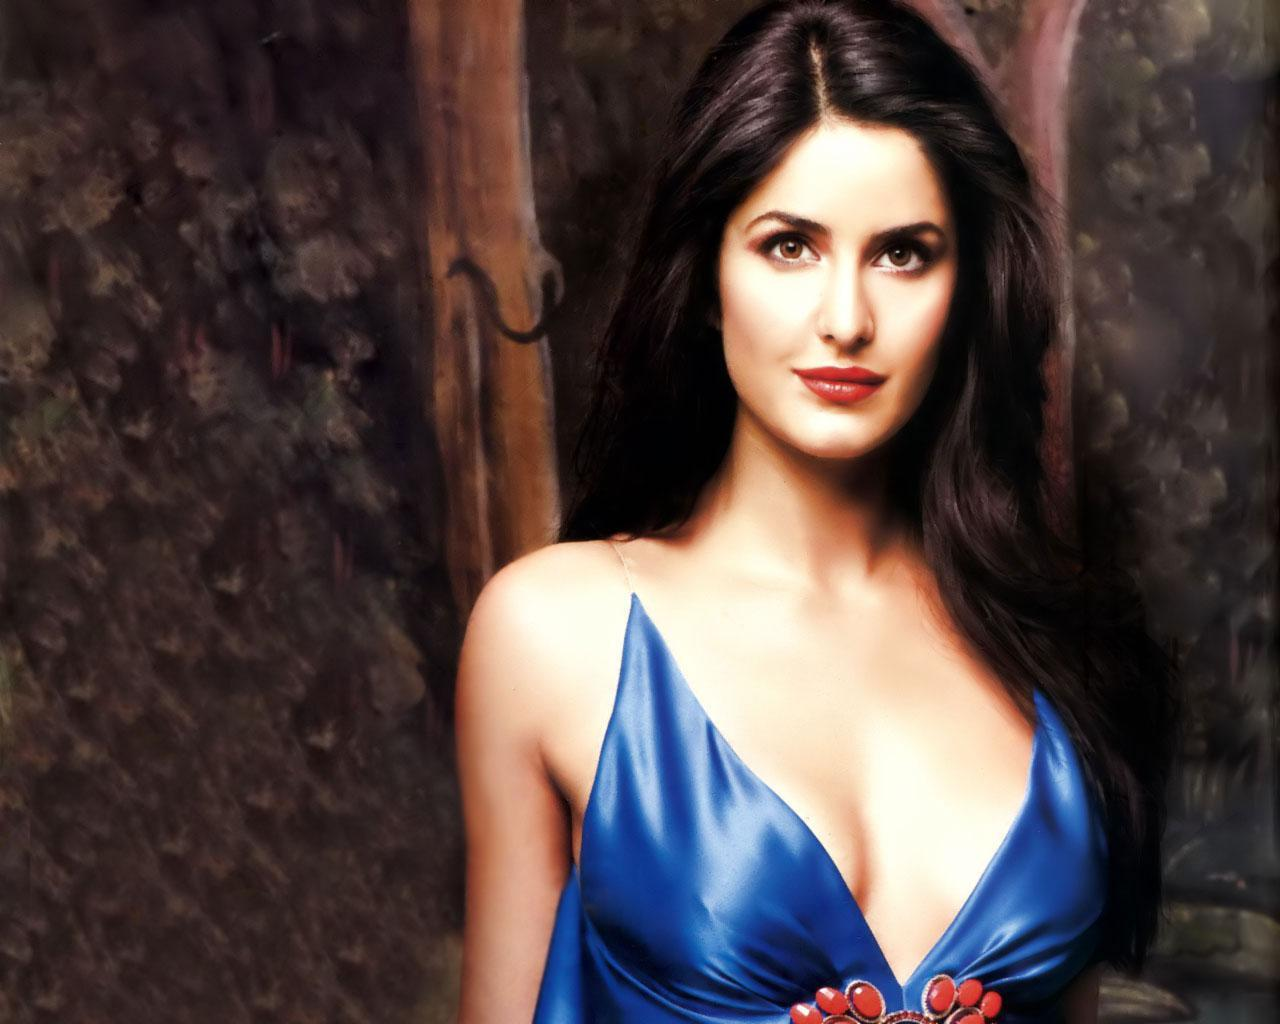 katrina kaif hot wallpapers photos images | vxv 7